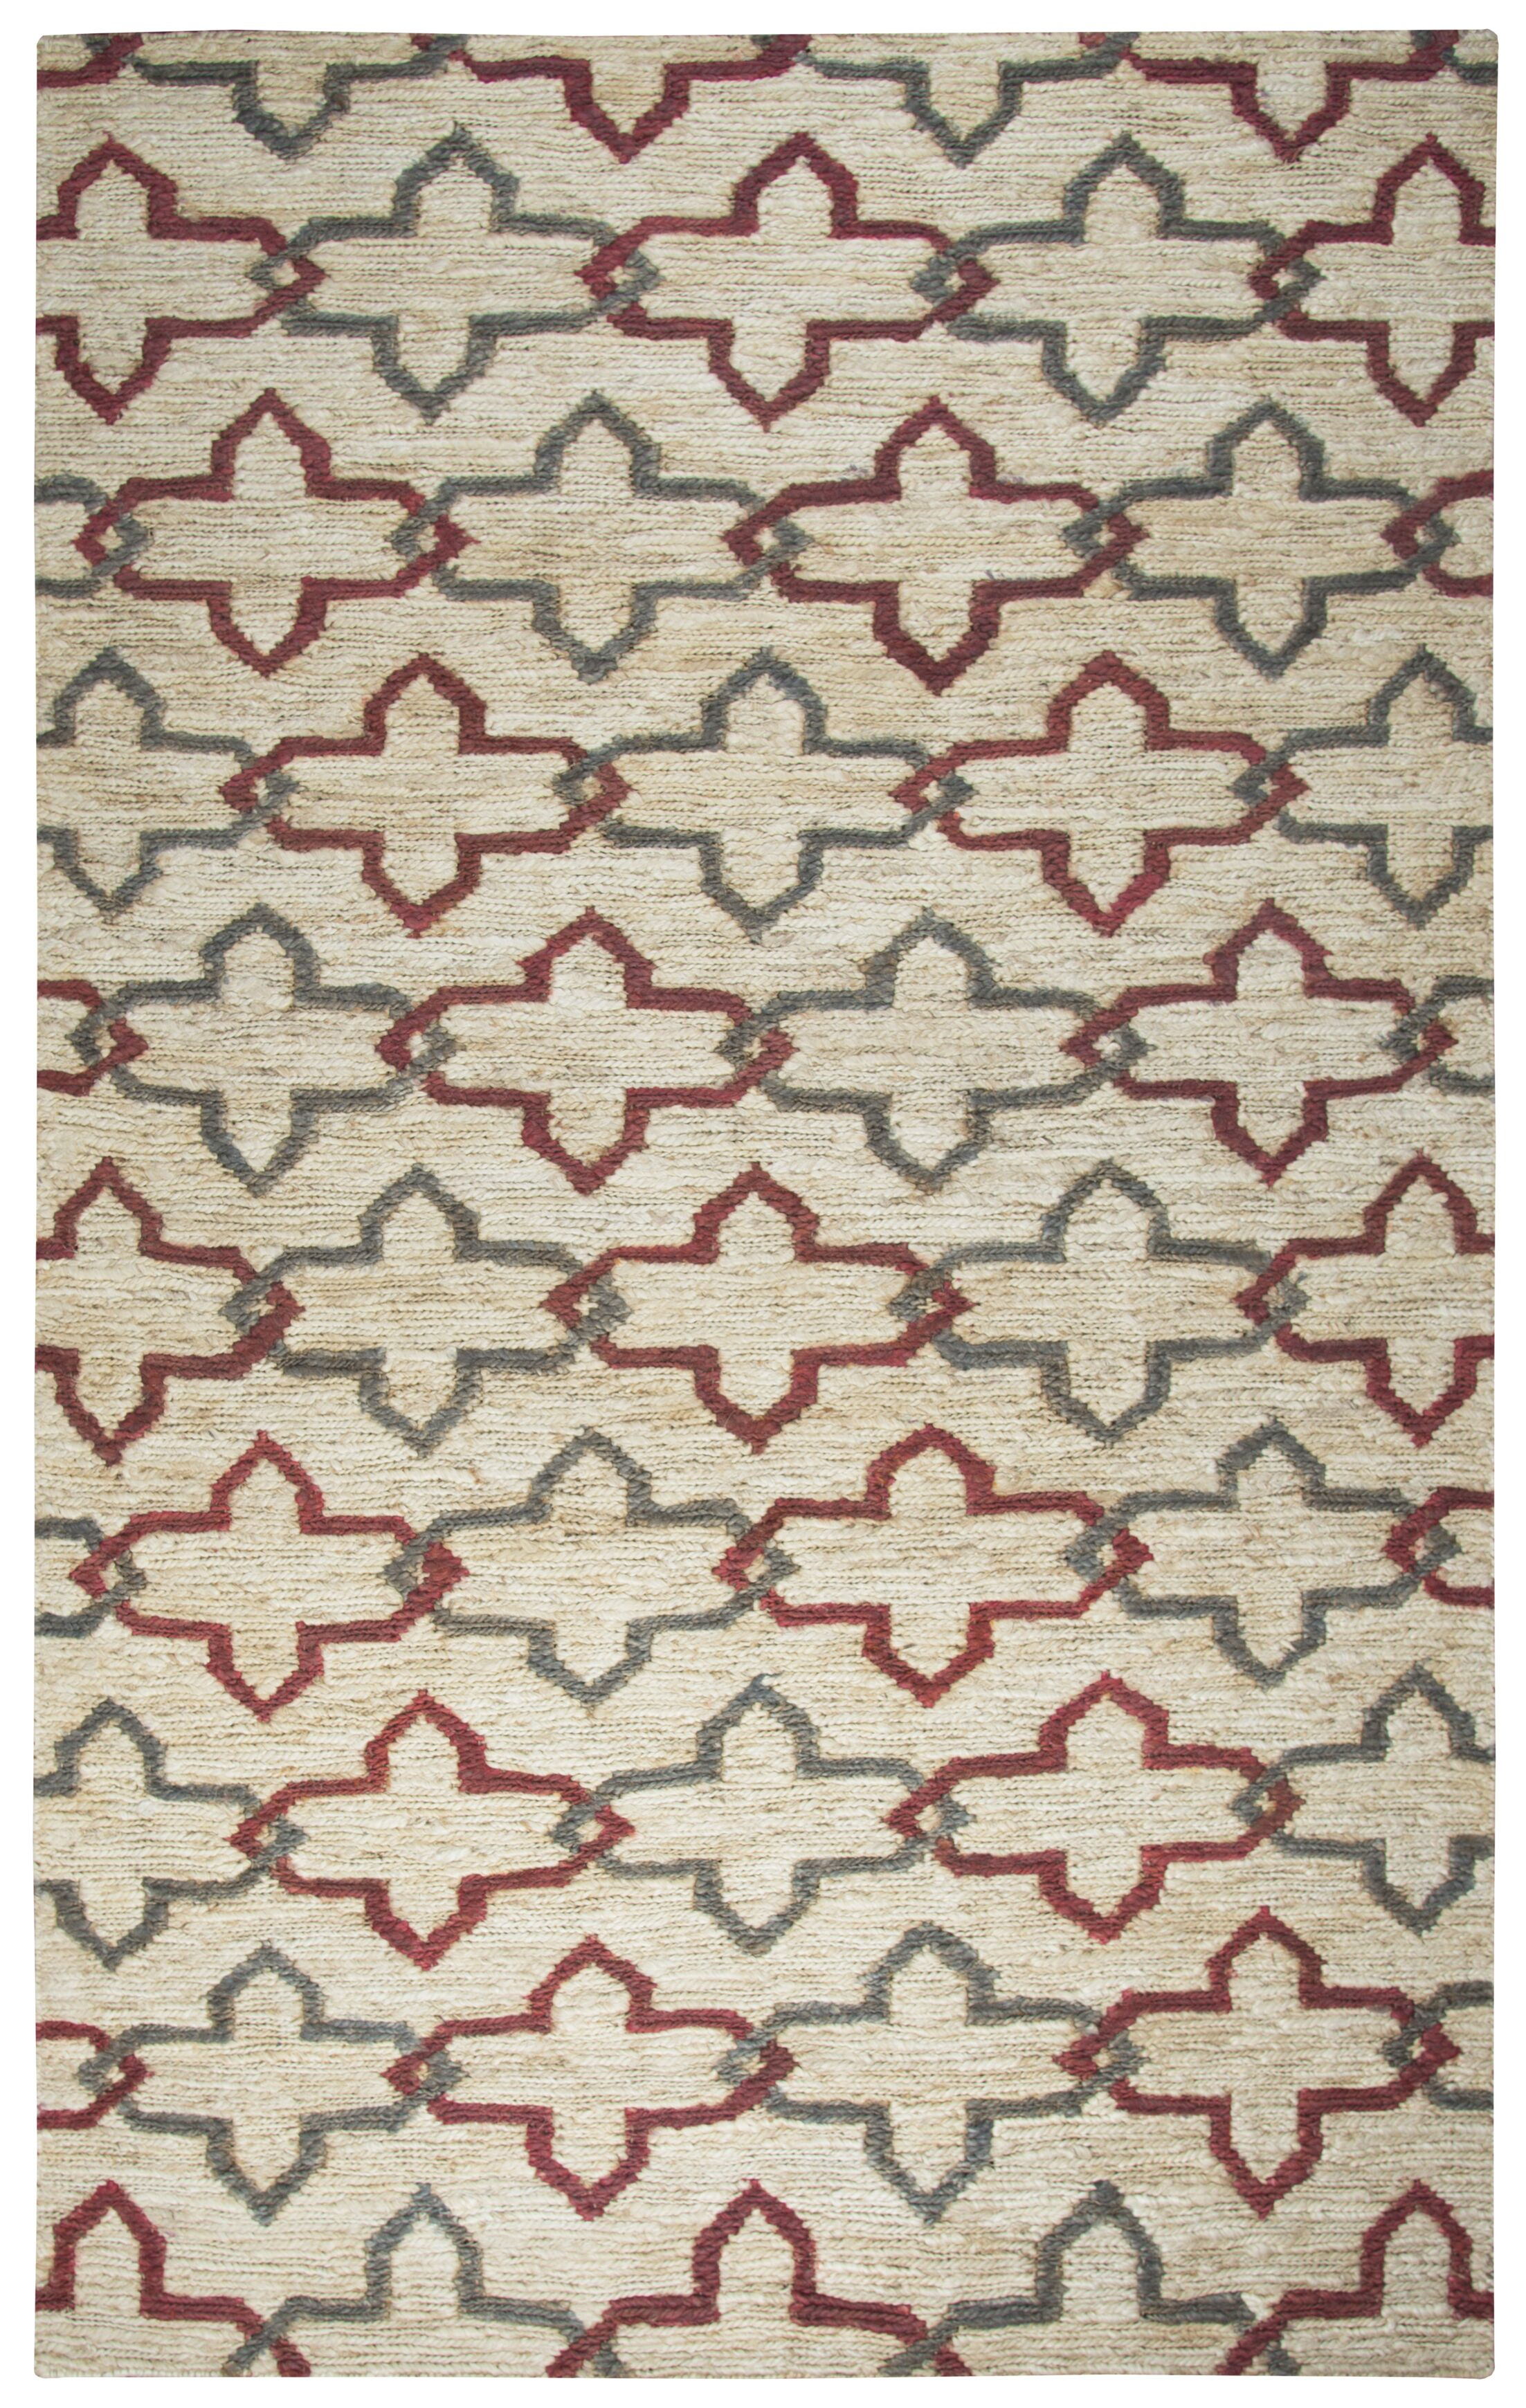 Whalan Hand-Woven Natural Area Rug Size: Rectangle 5' x 8'